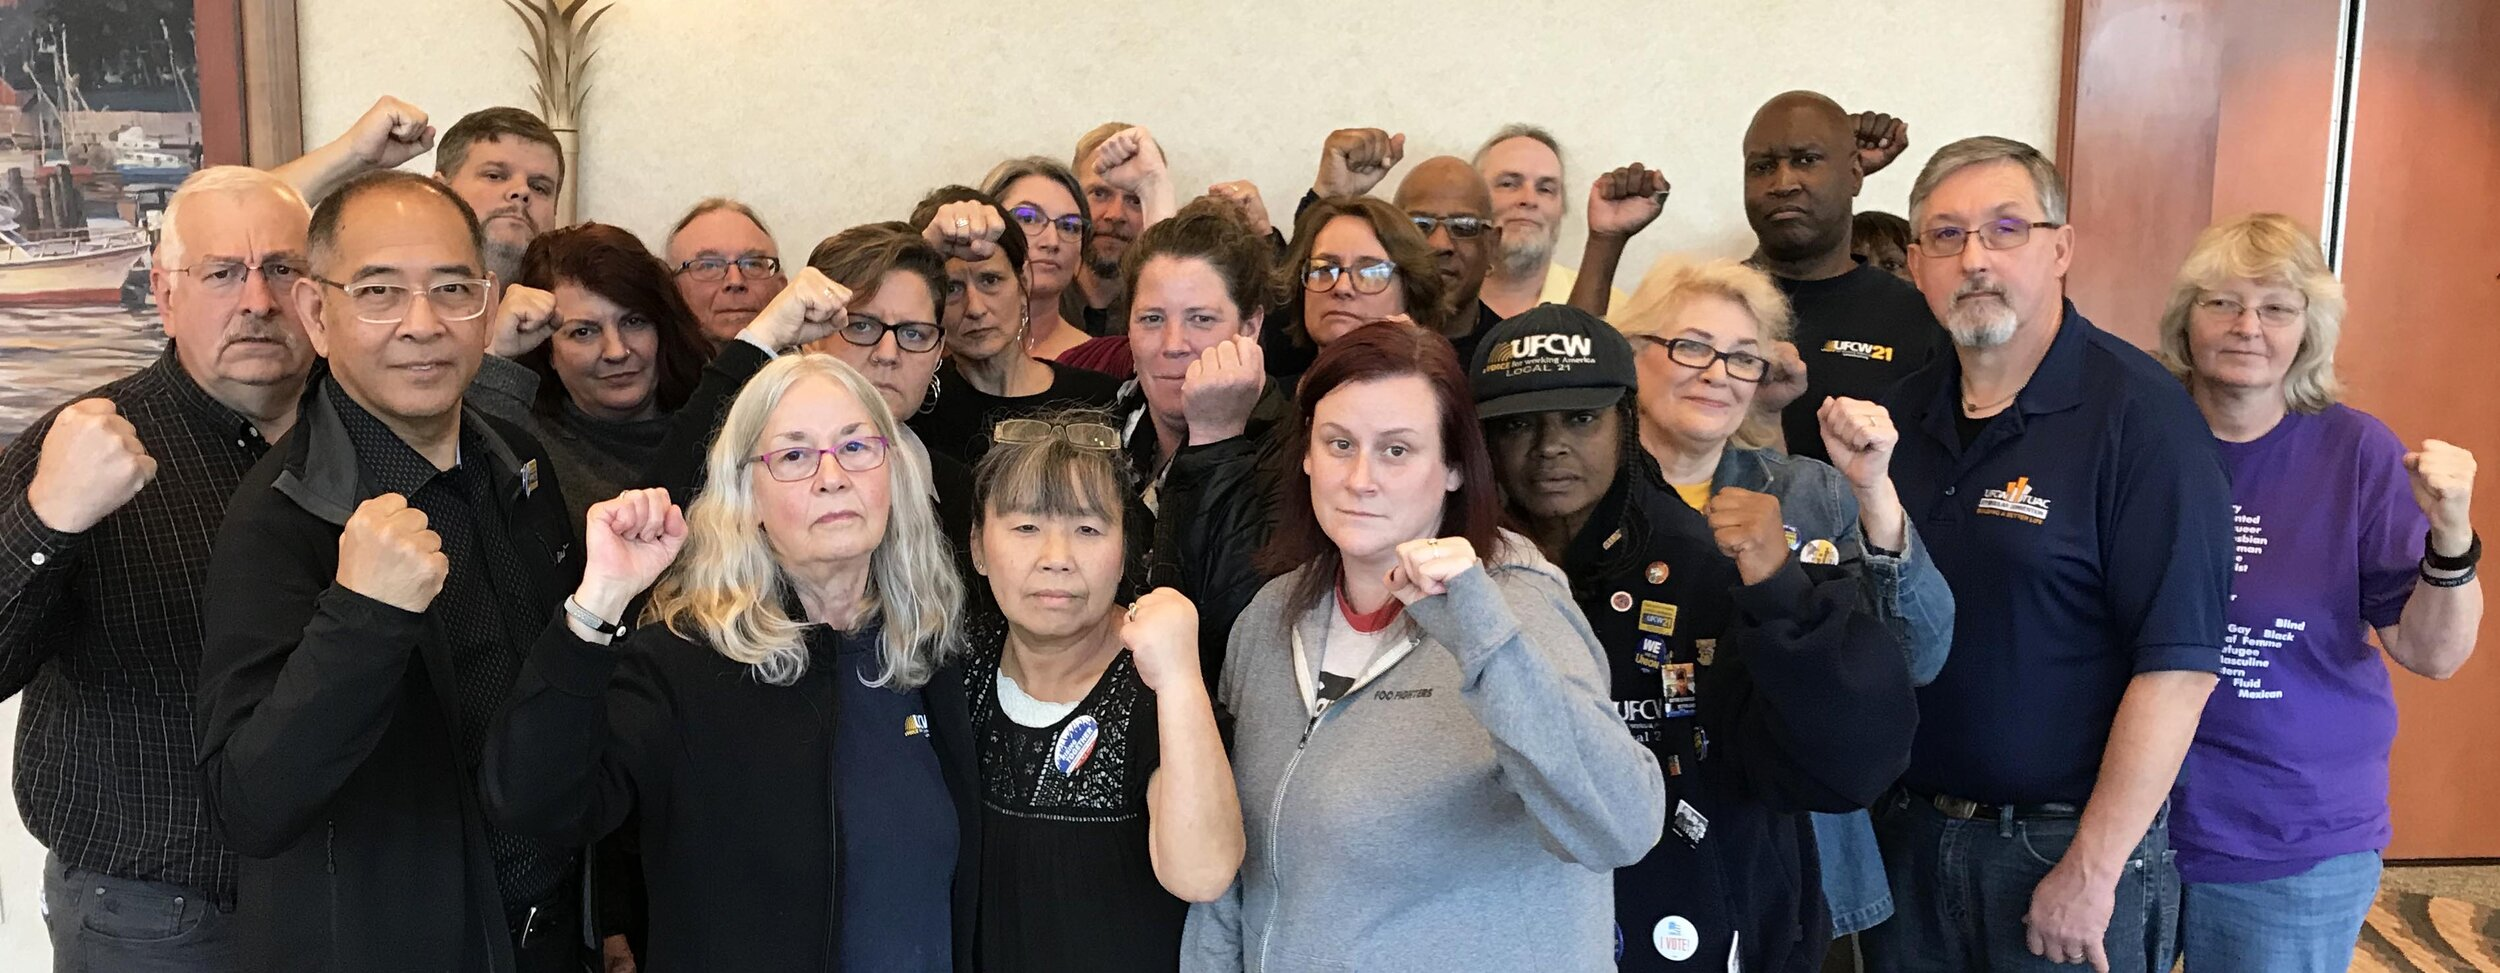 2019 Grocery Bargaining team no TA WEB.jpg